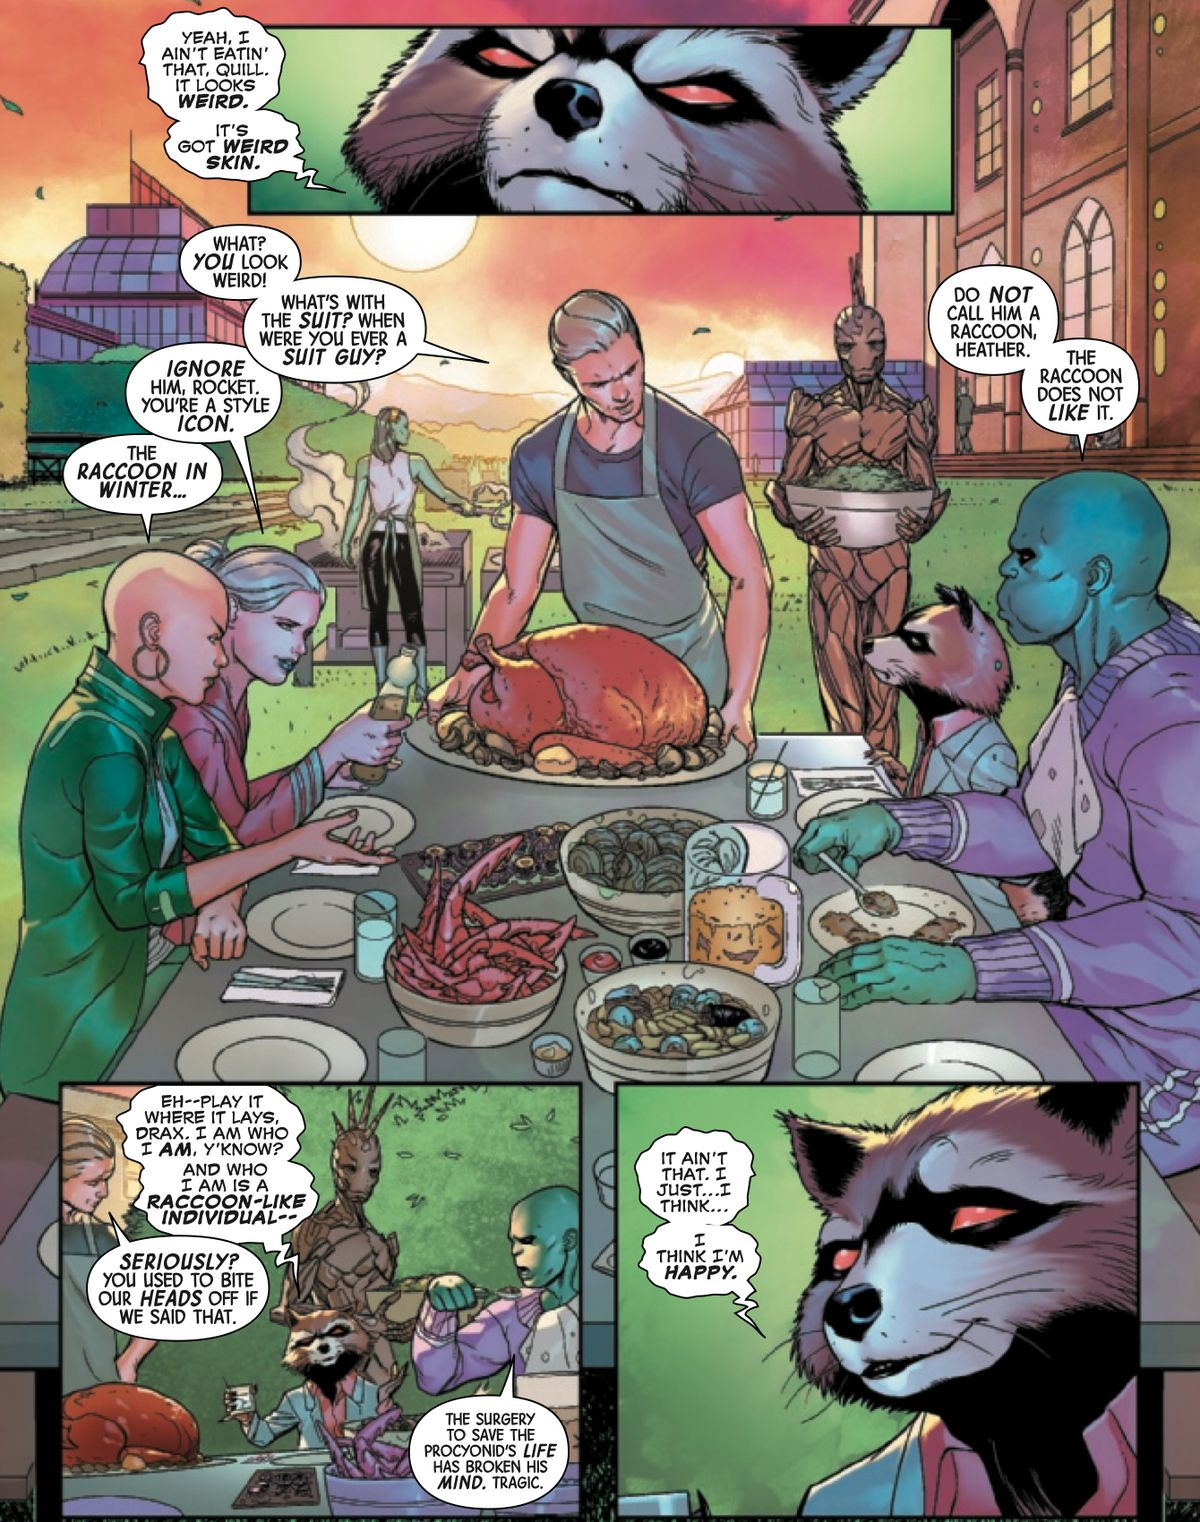 The Guardians of the Galaxy share a family meal in Star-Lord and Gamora's backyard in Guardians of the Galaxy #1, Marvel Comics (2020).